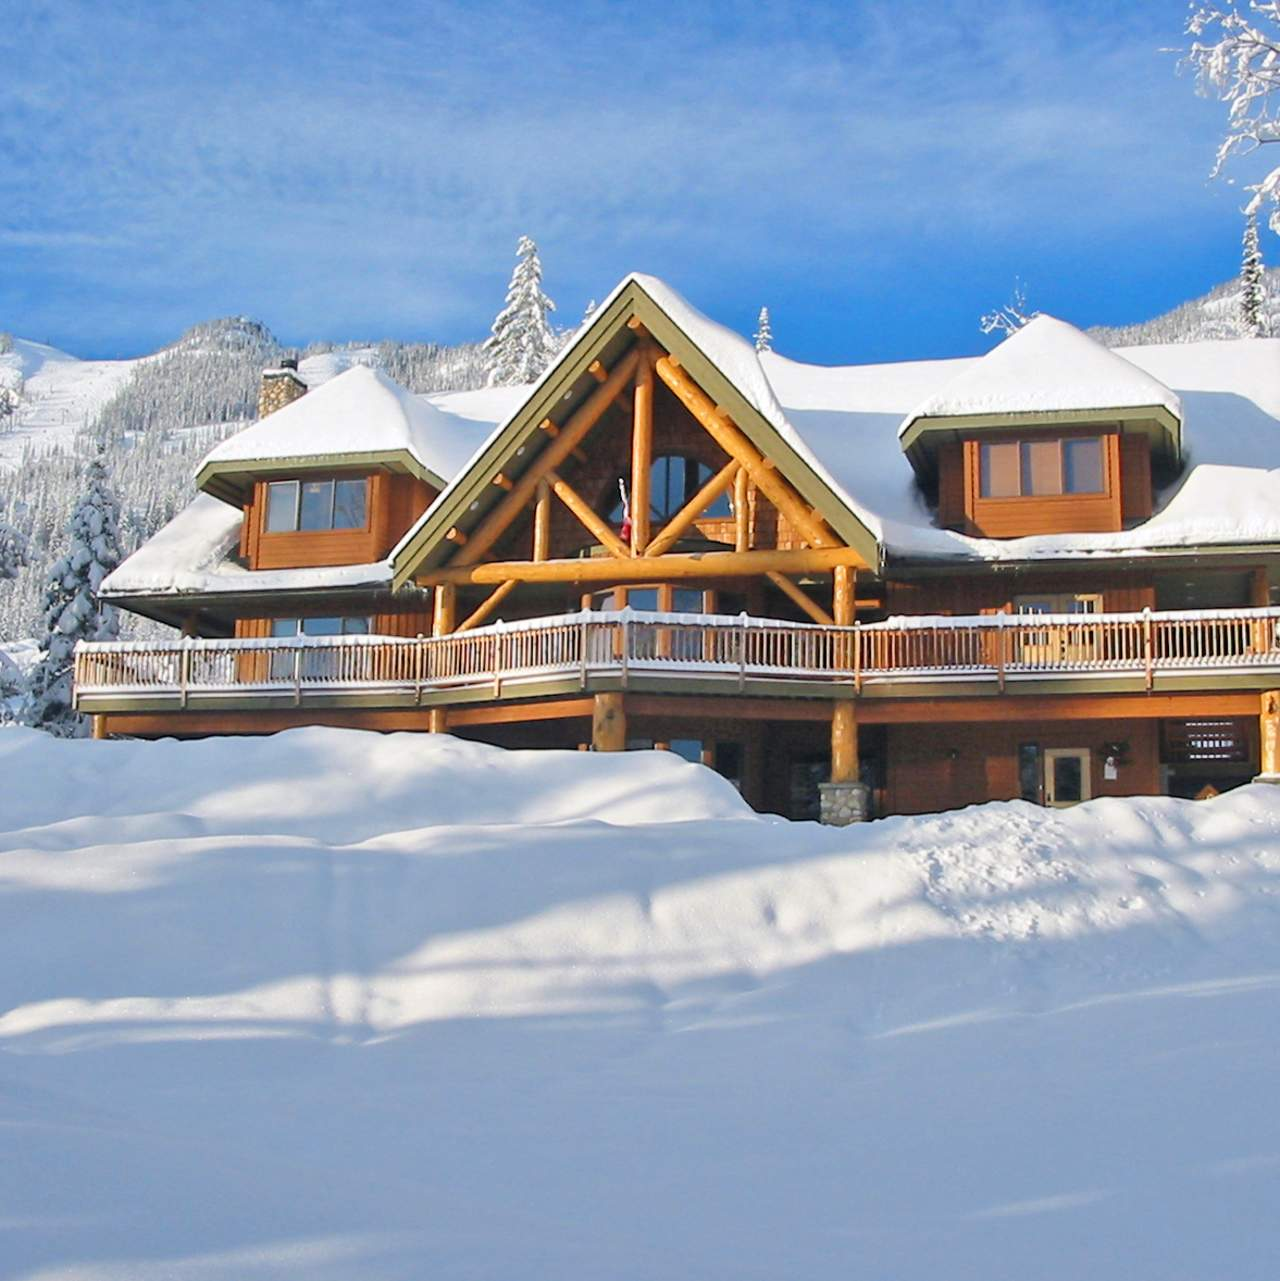 Hotel, British Columbia: Vagabond Lodge